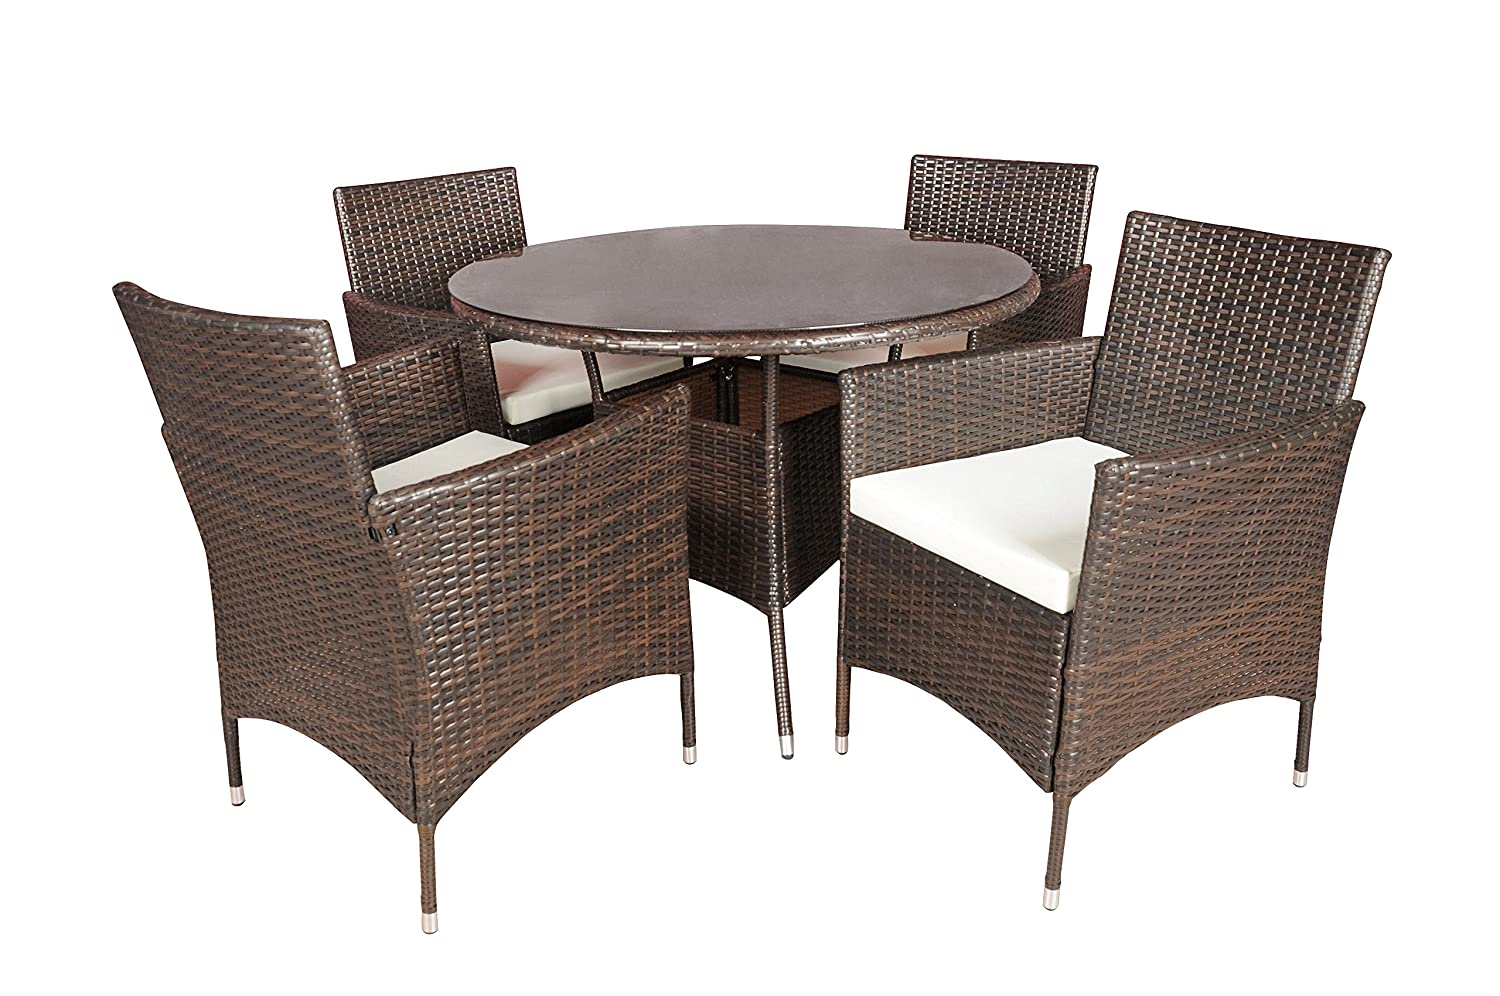 Super Outdoor Patio Table And Chairs Dining Furniture Set Brown Download Free Architecture Designs Aeocymadebymaigaardcom